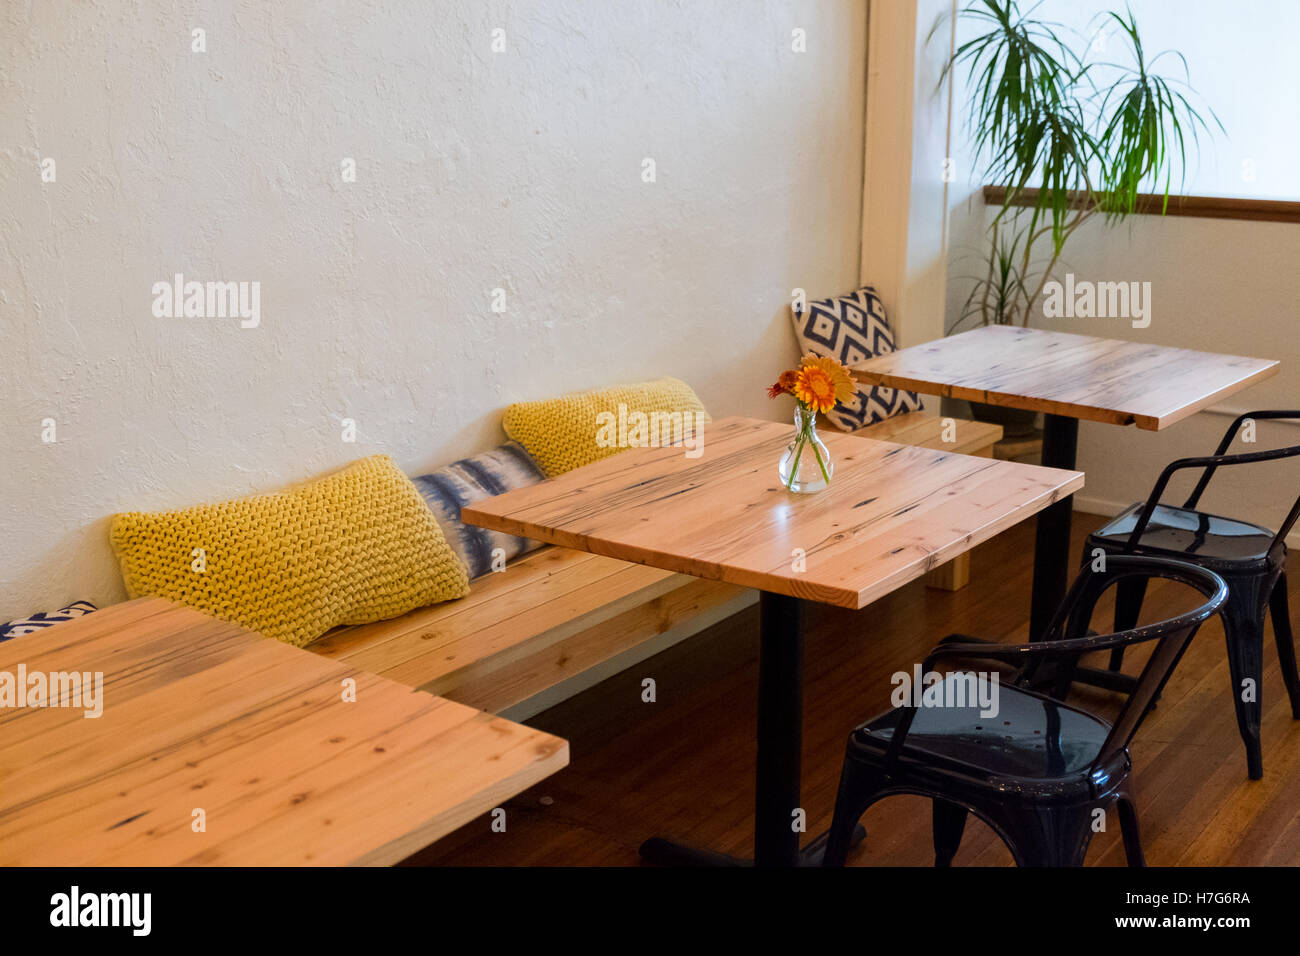 bench seating at a coffee shop restaurant with small cafe tables